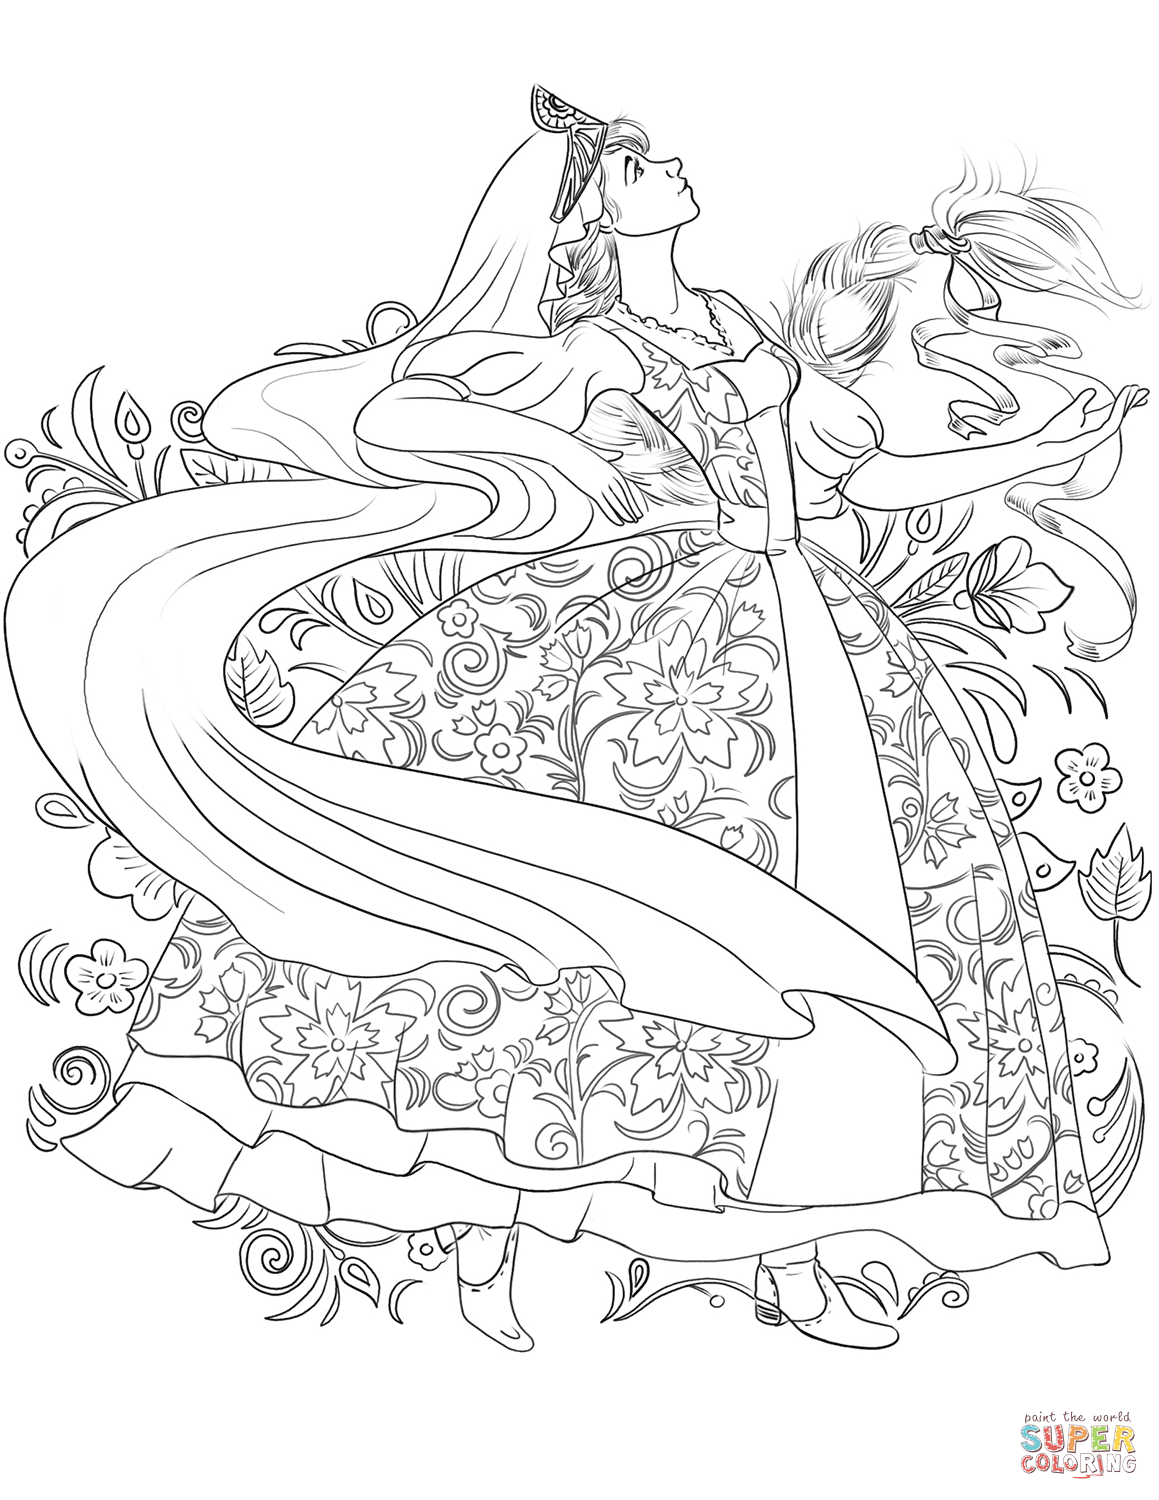 Russian Woman in a Traditional Dress Dancing coloring page